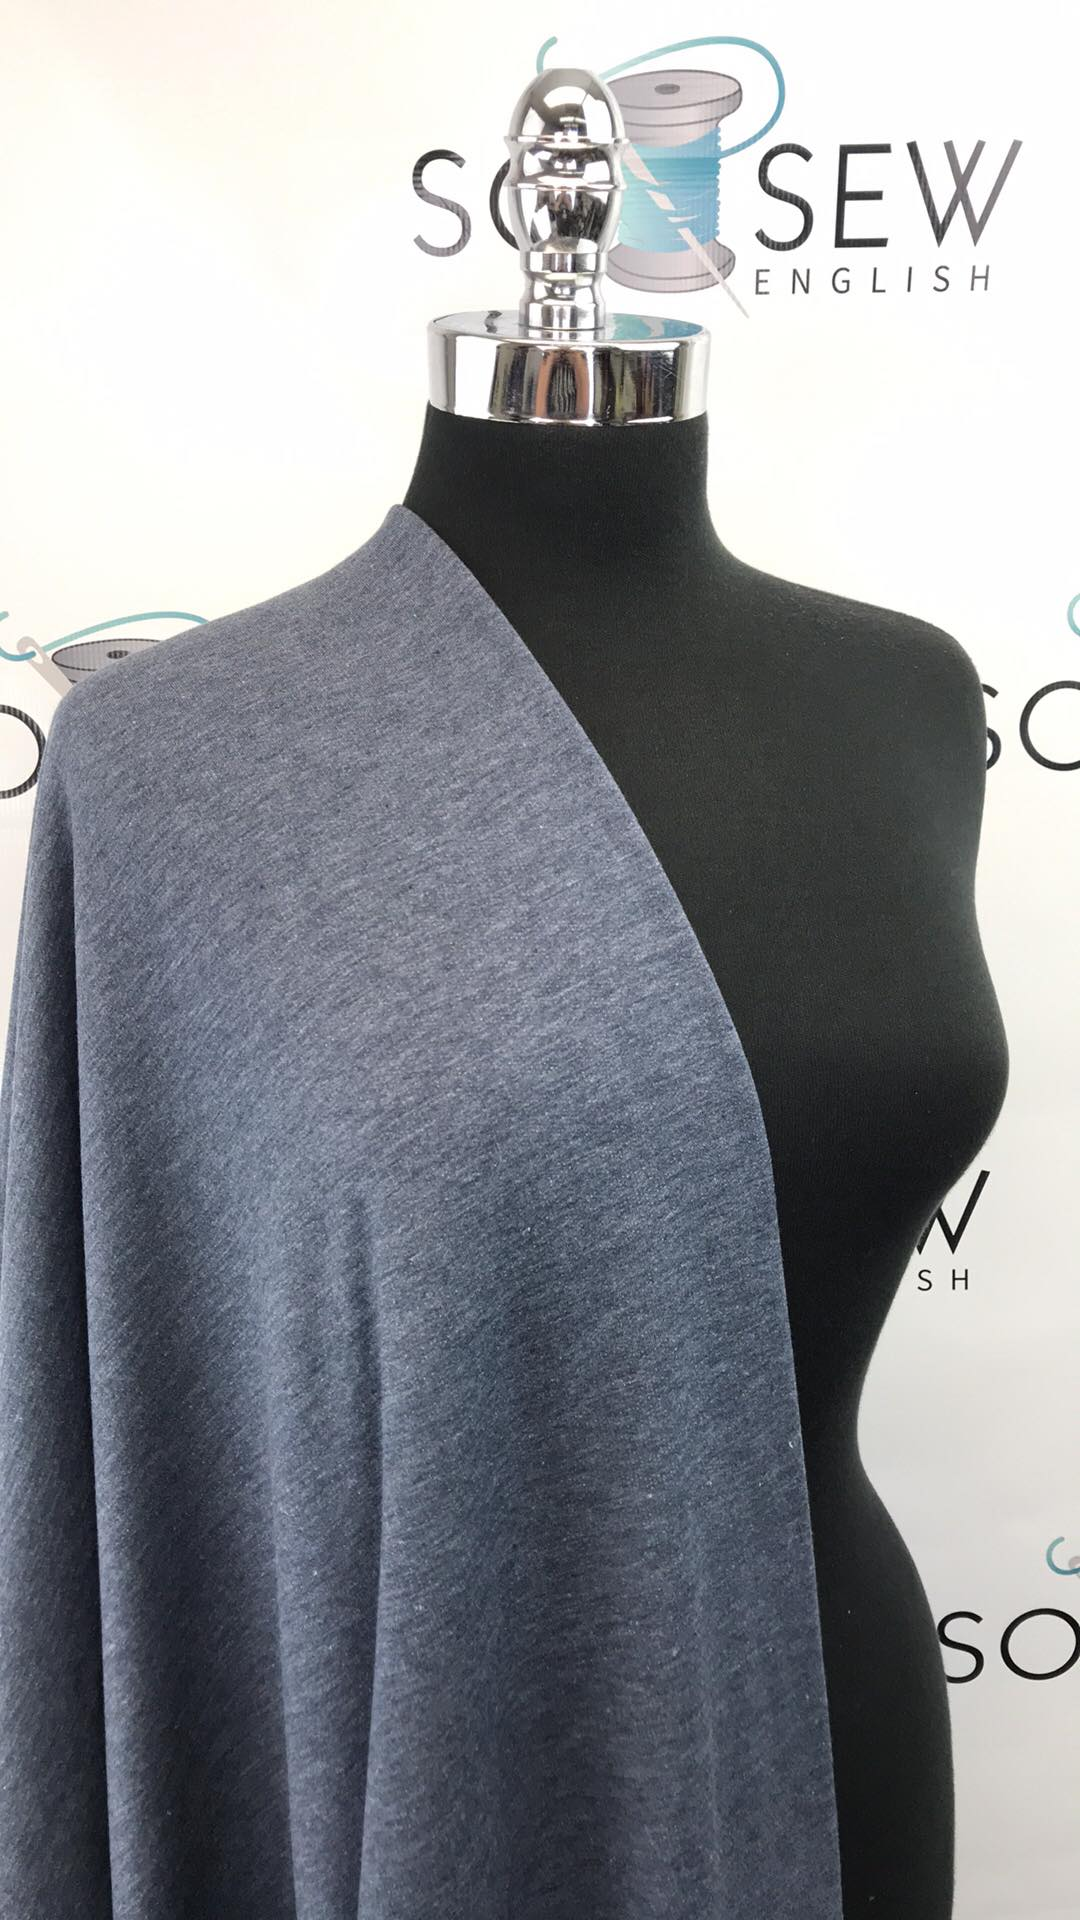 Denim BRUSHED FT - Poly Rayon Spandex French Terry- By the yard